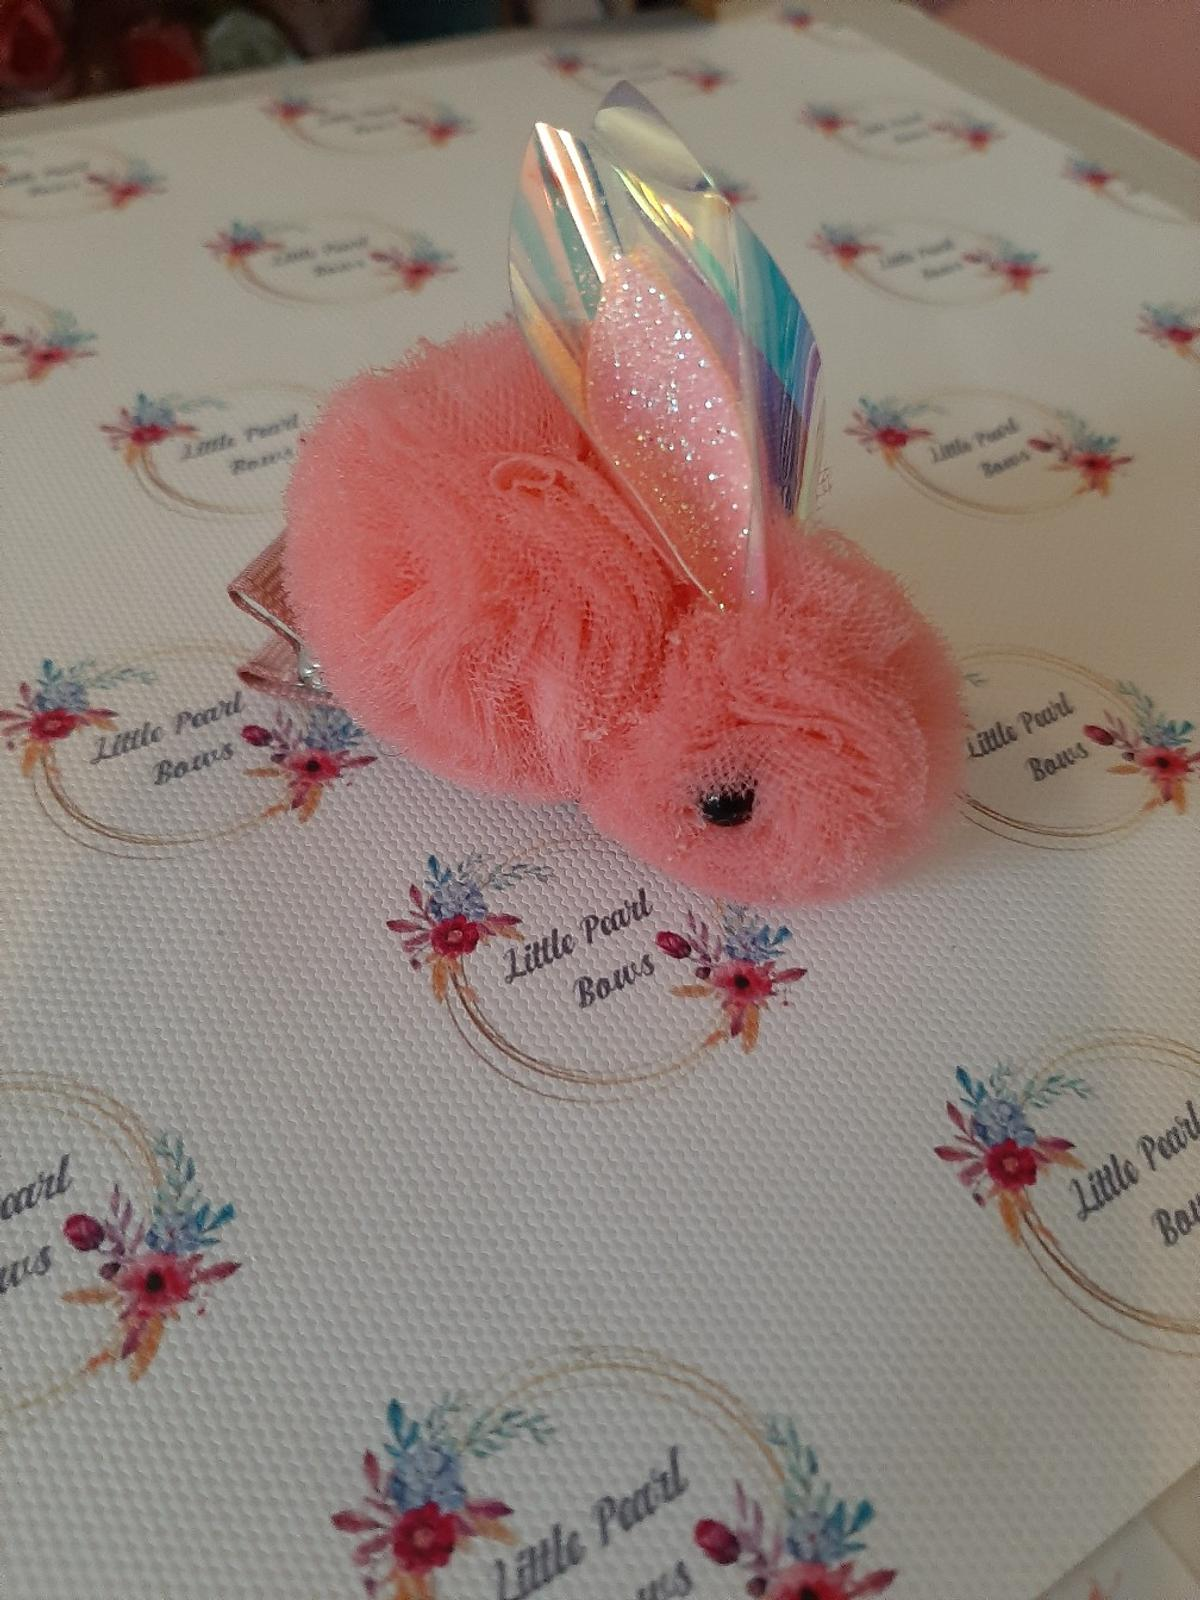 Handmade Tulle Bunny Hairclip Only This One Available Last One Rest Have Sold Out Collection or Postage Extra